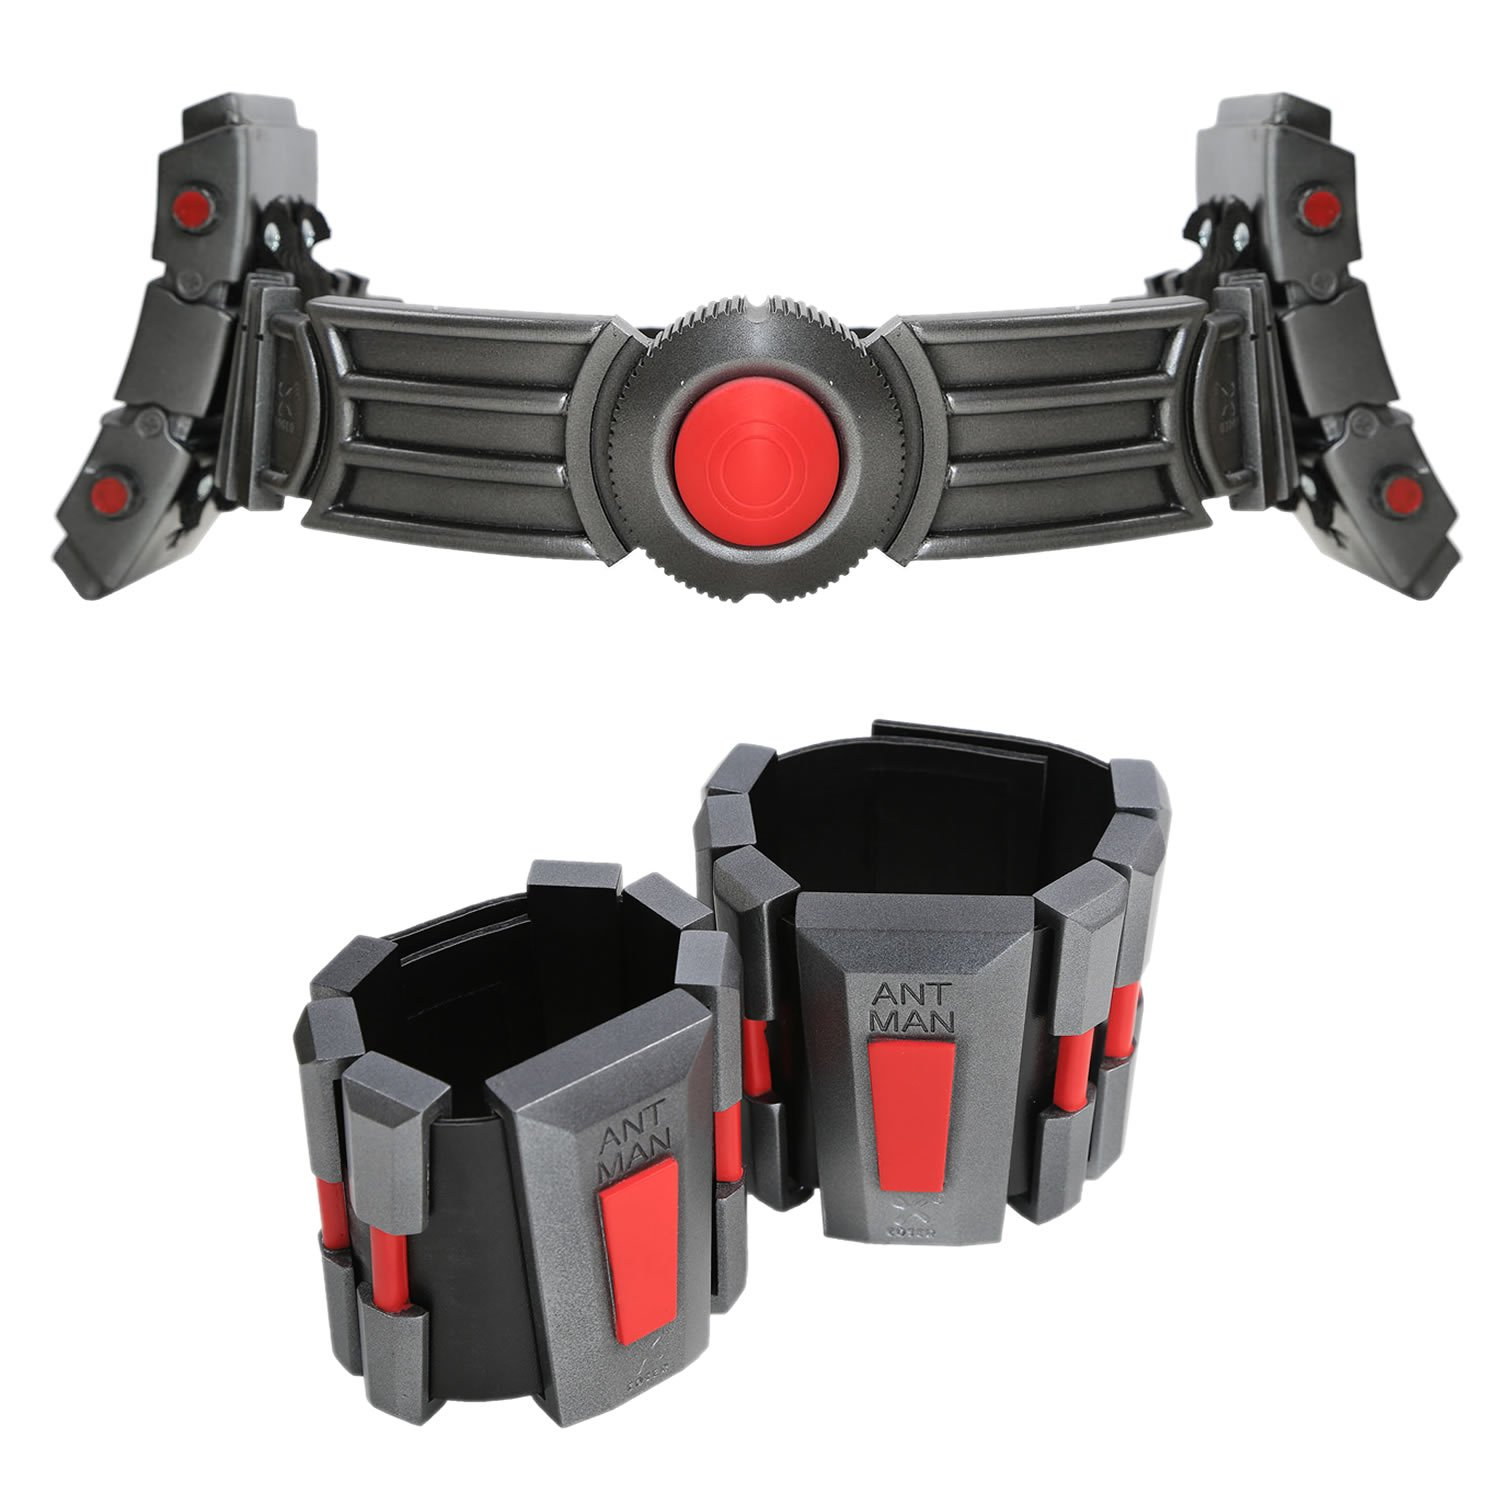 Ant-Man Cosplay Belt Wristguard Men's Costume Props with LED for Halloween Adult